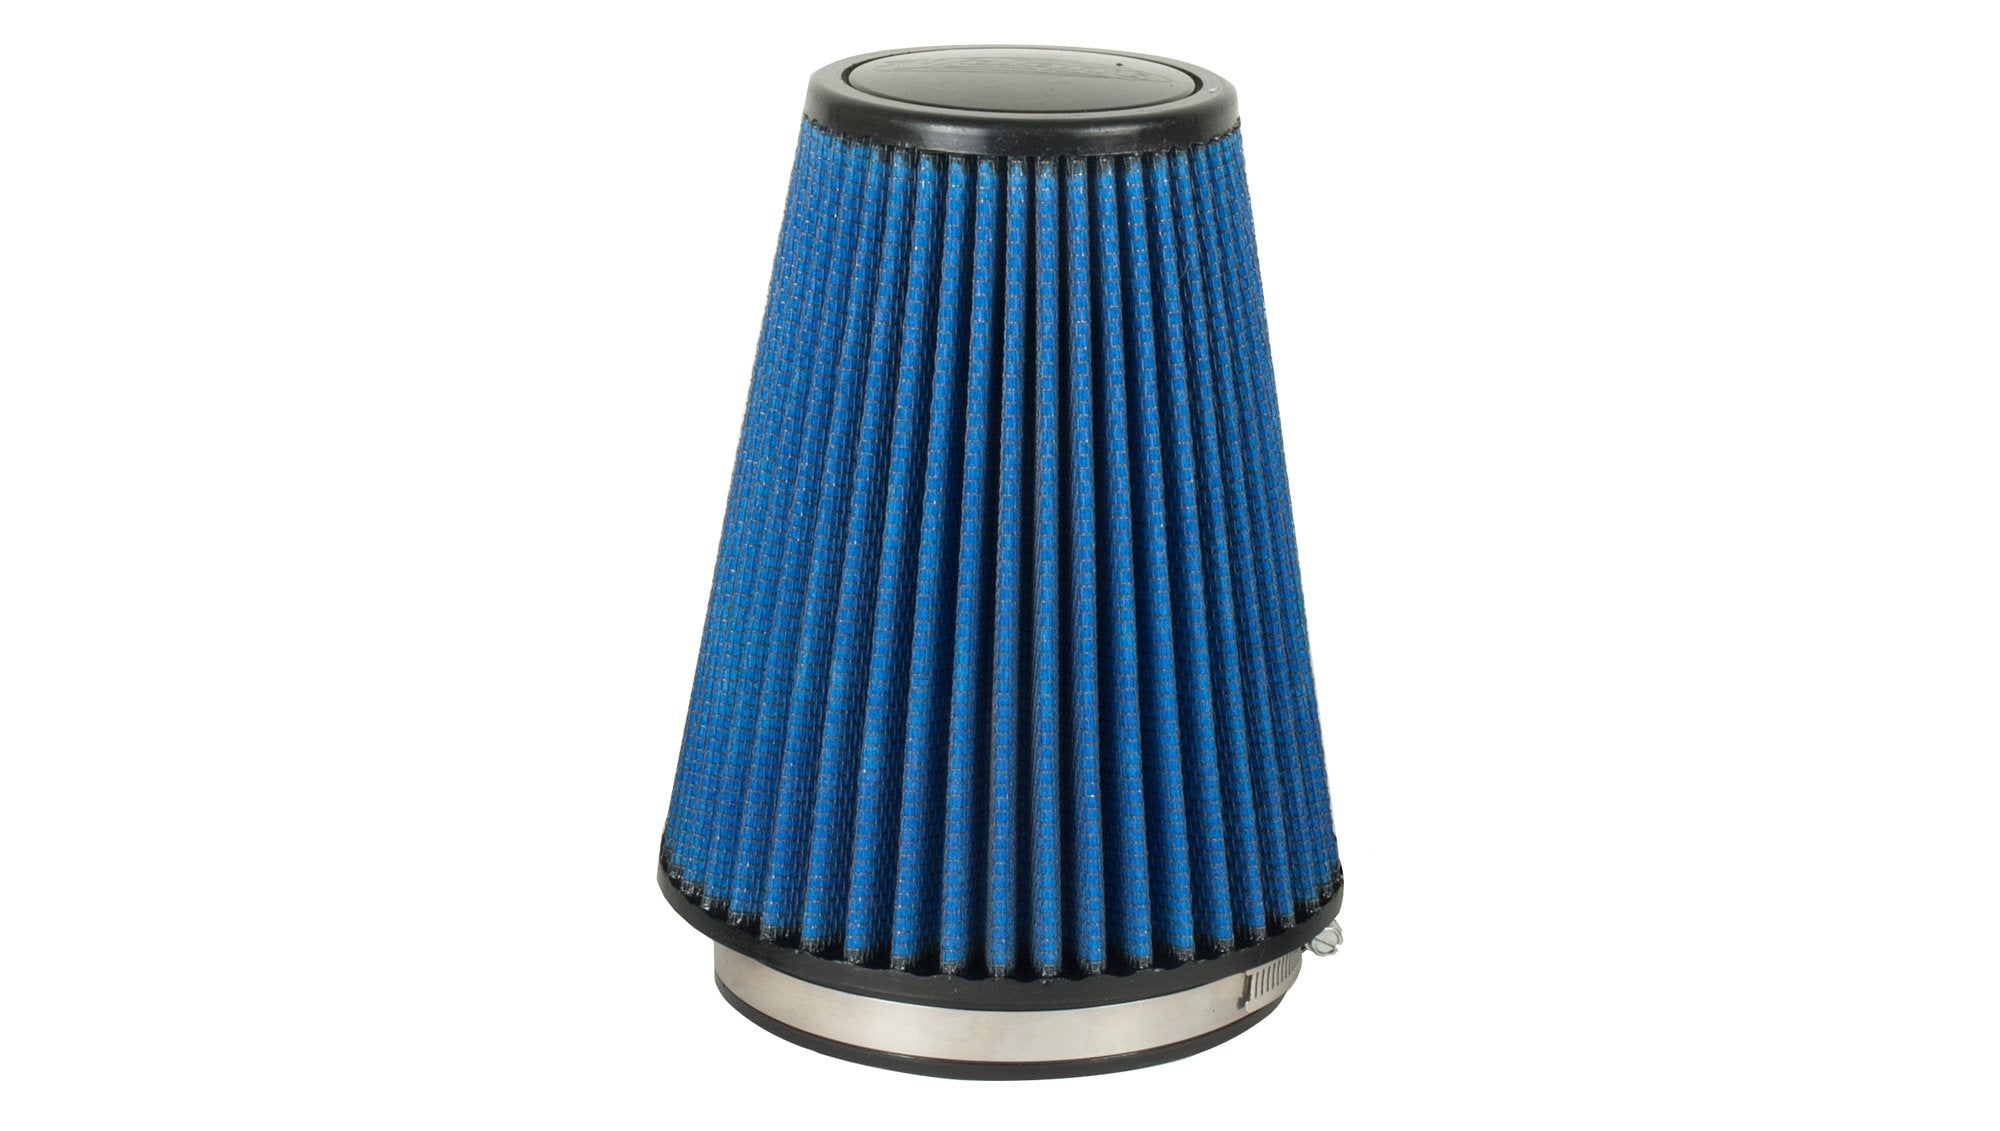 Cotton Oiled Air Intake Air Filter - 5118